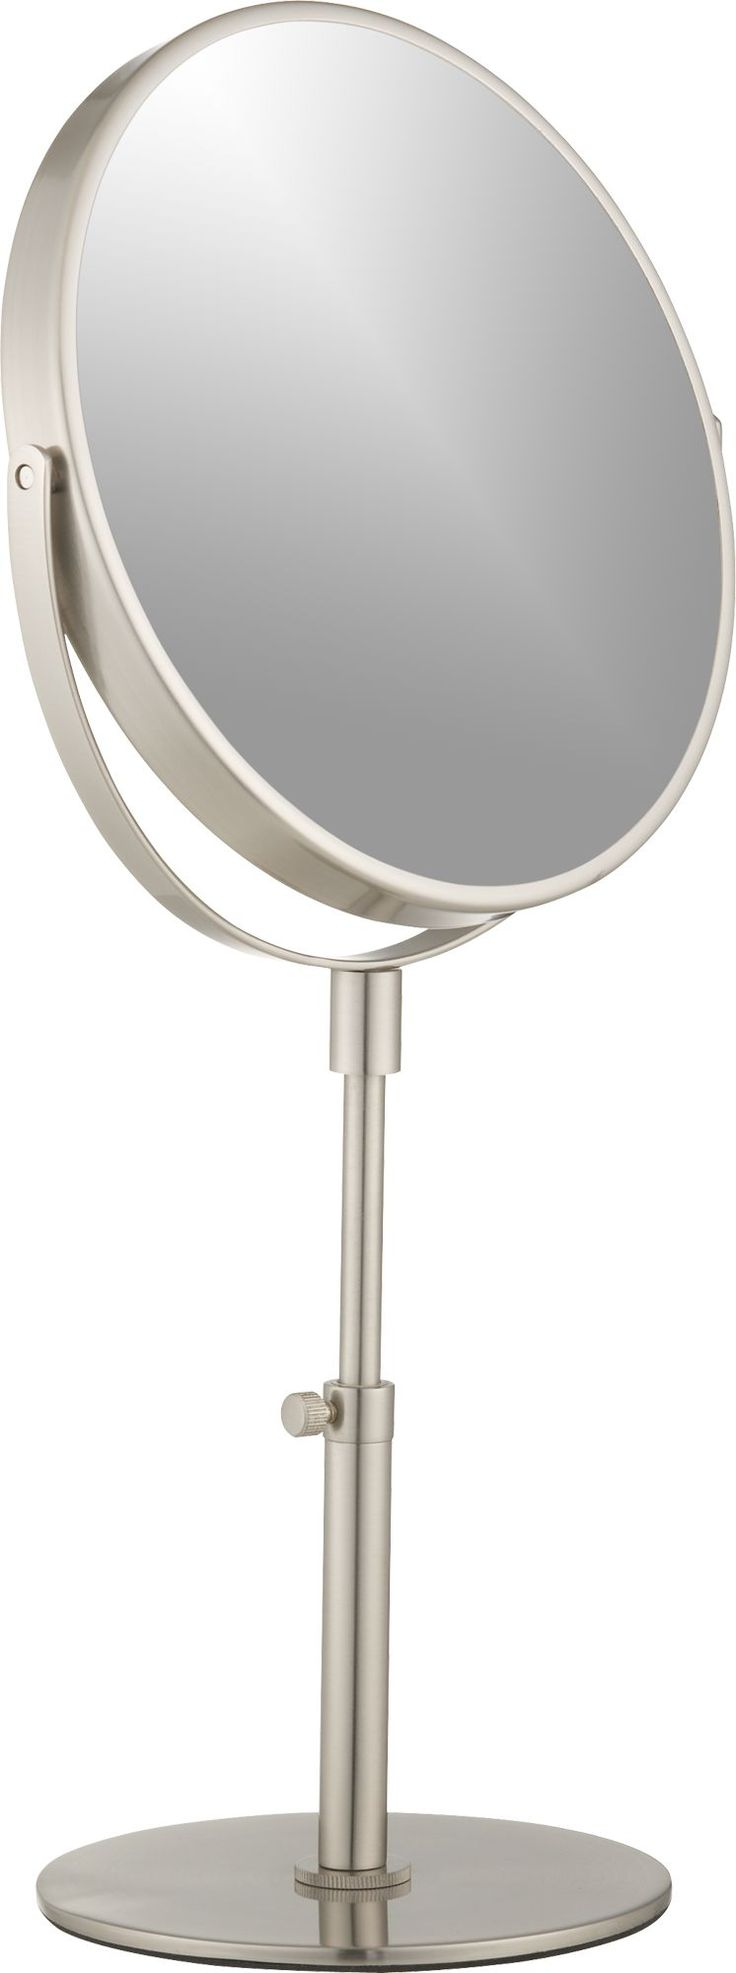 18 Best Images About Vanity Makeup Mirror With Lights On